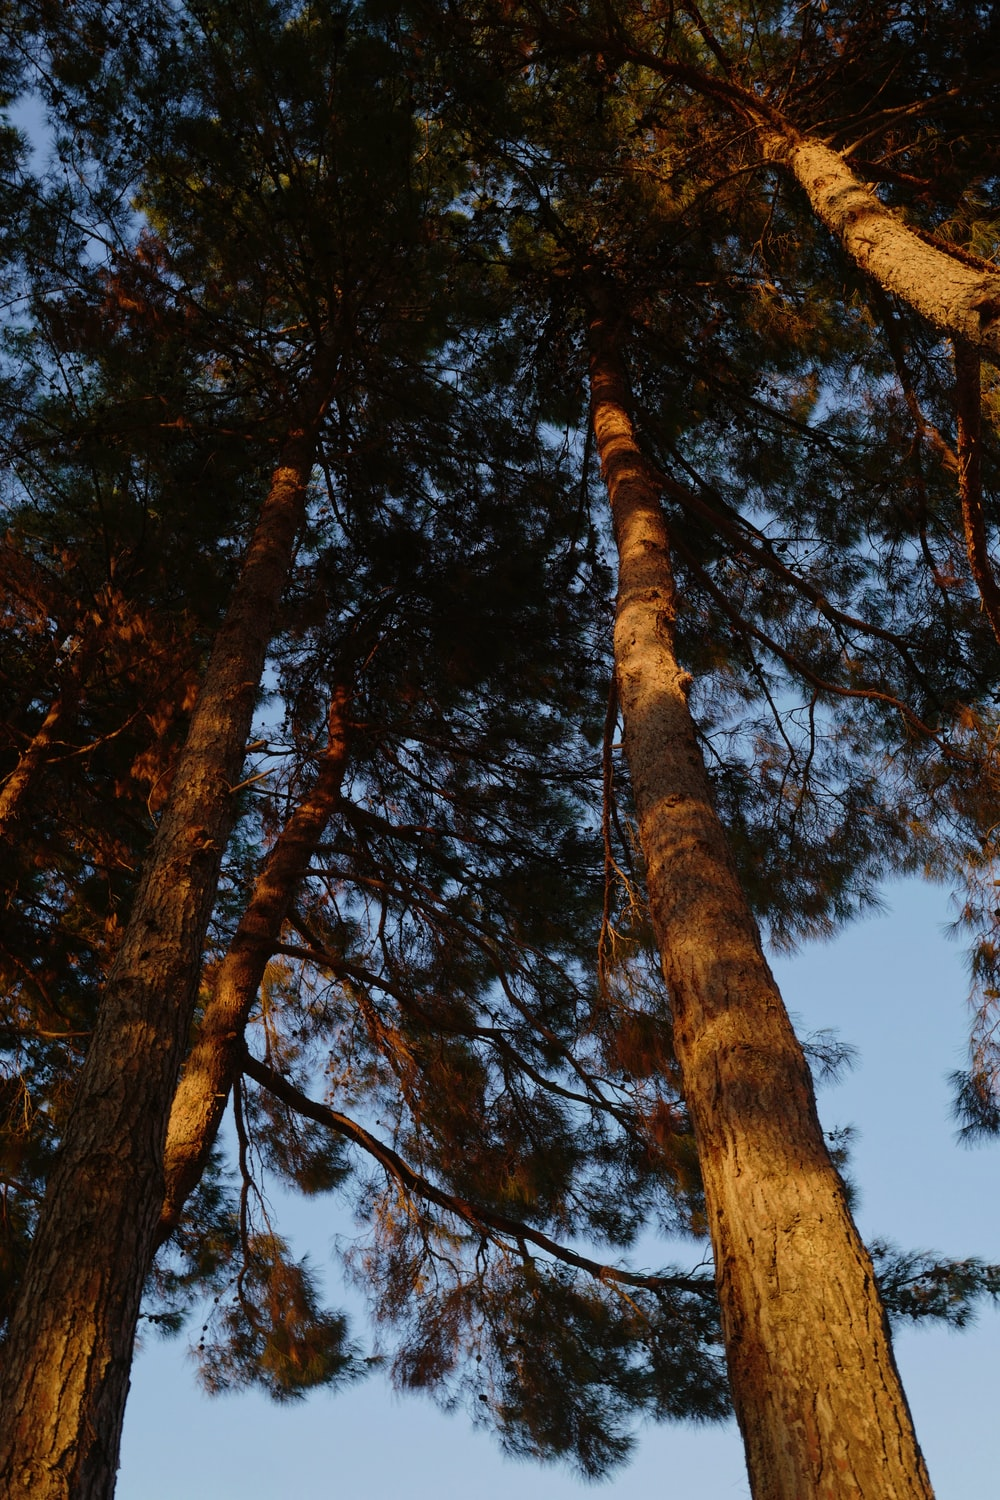 low angle photography of brown trees under blue sky during daytime